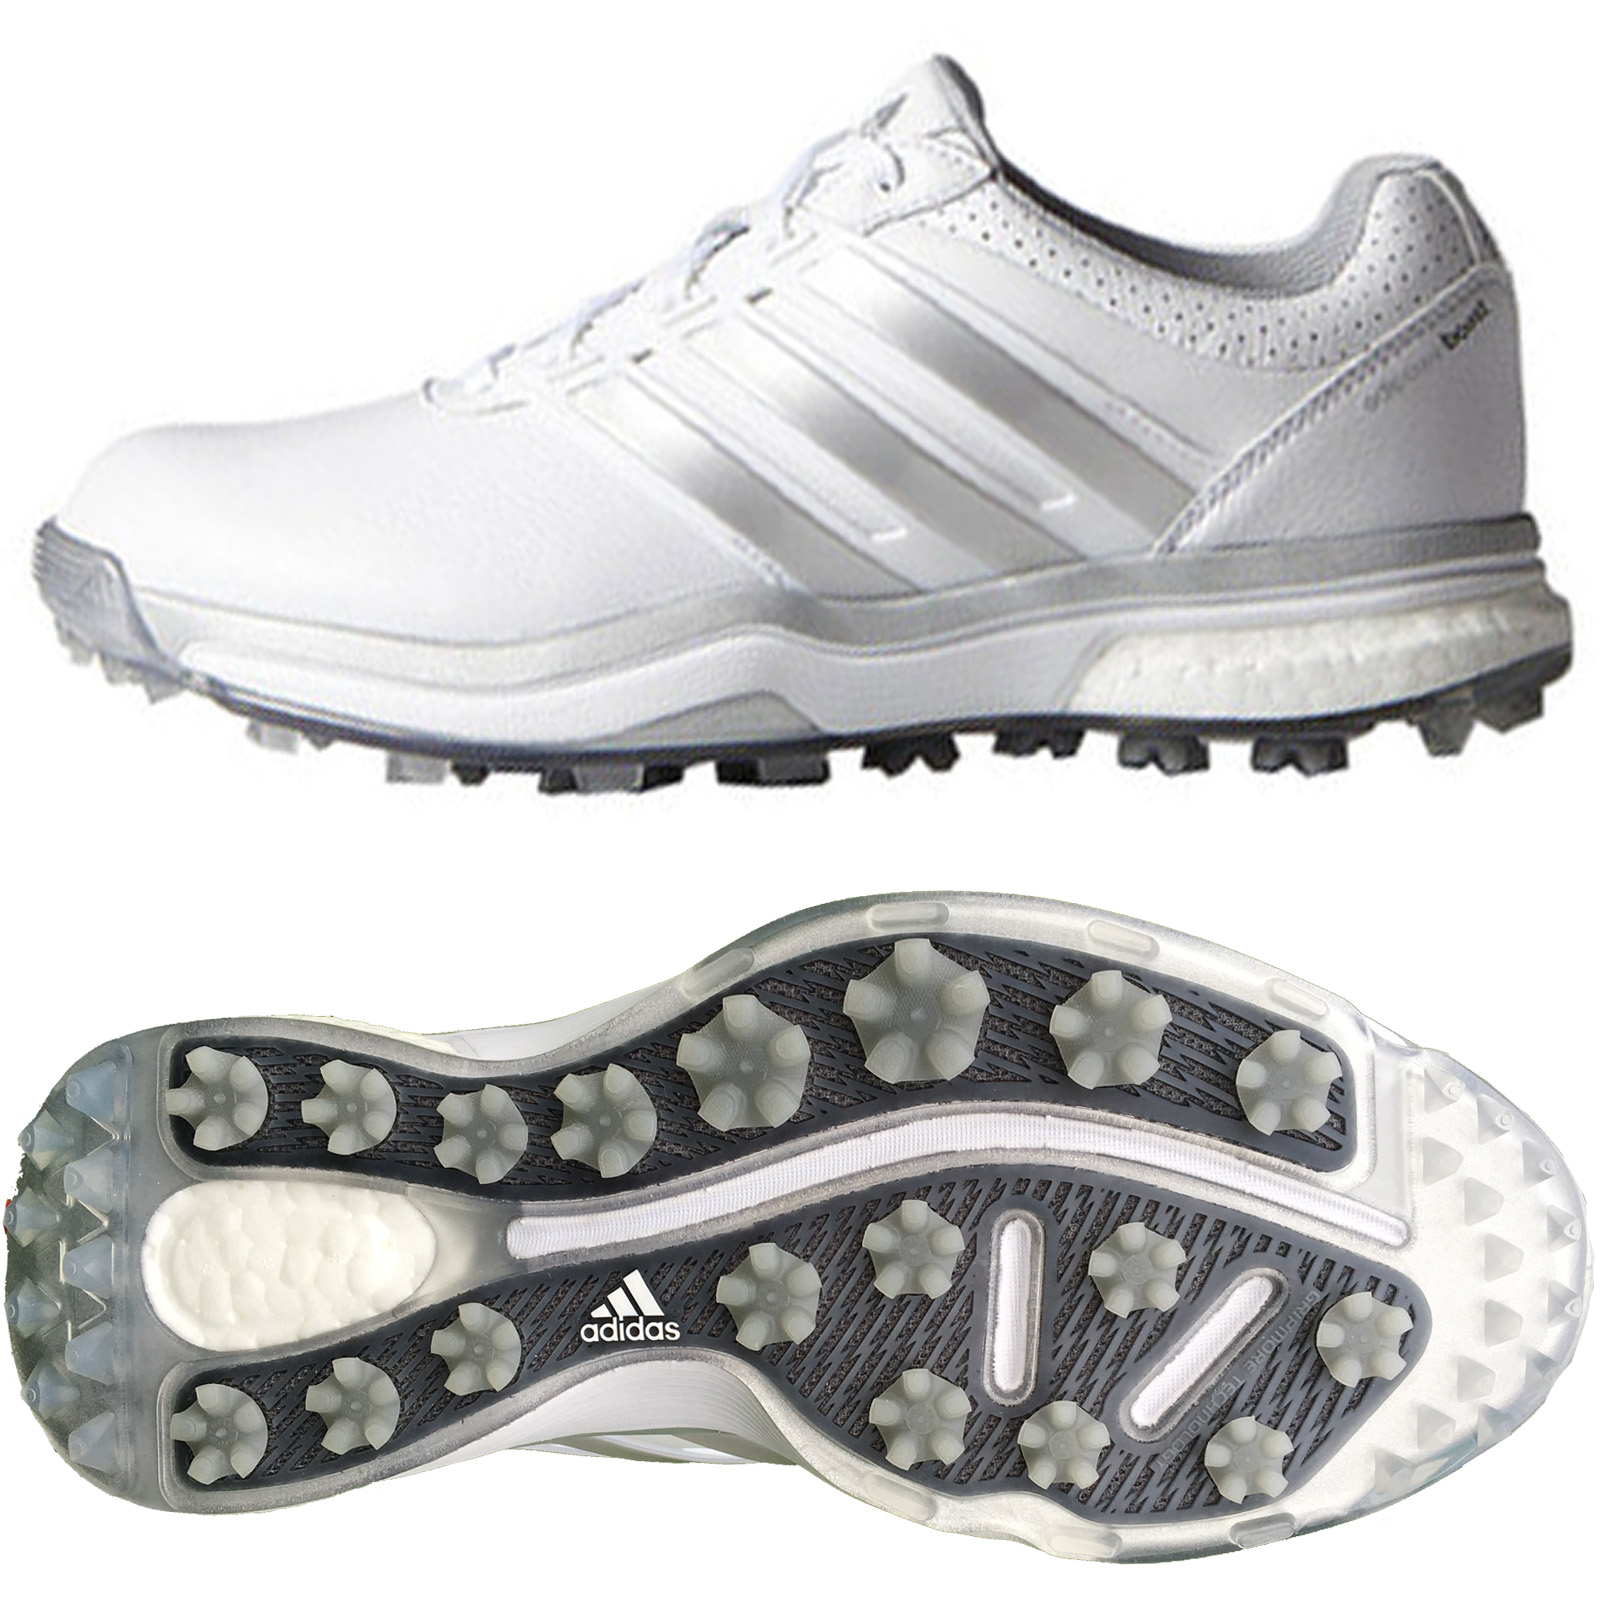 2.628 adidas clearance signore donne adipower aumentare - ii - aumentare golf 0ea196